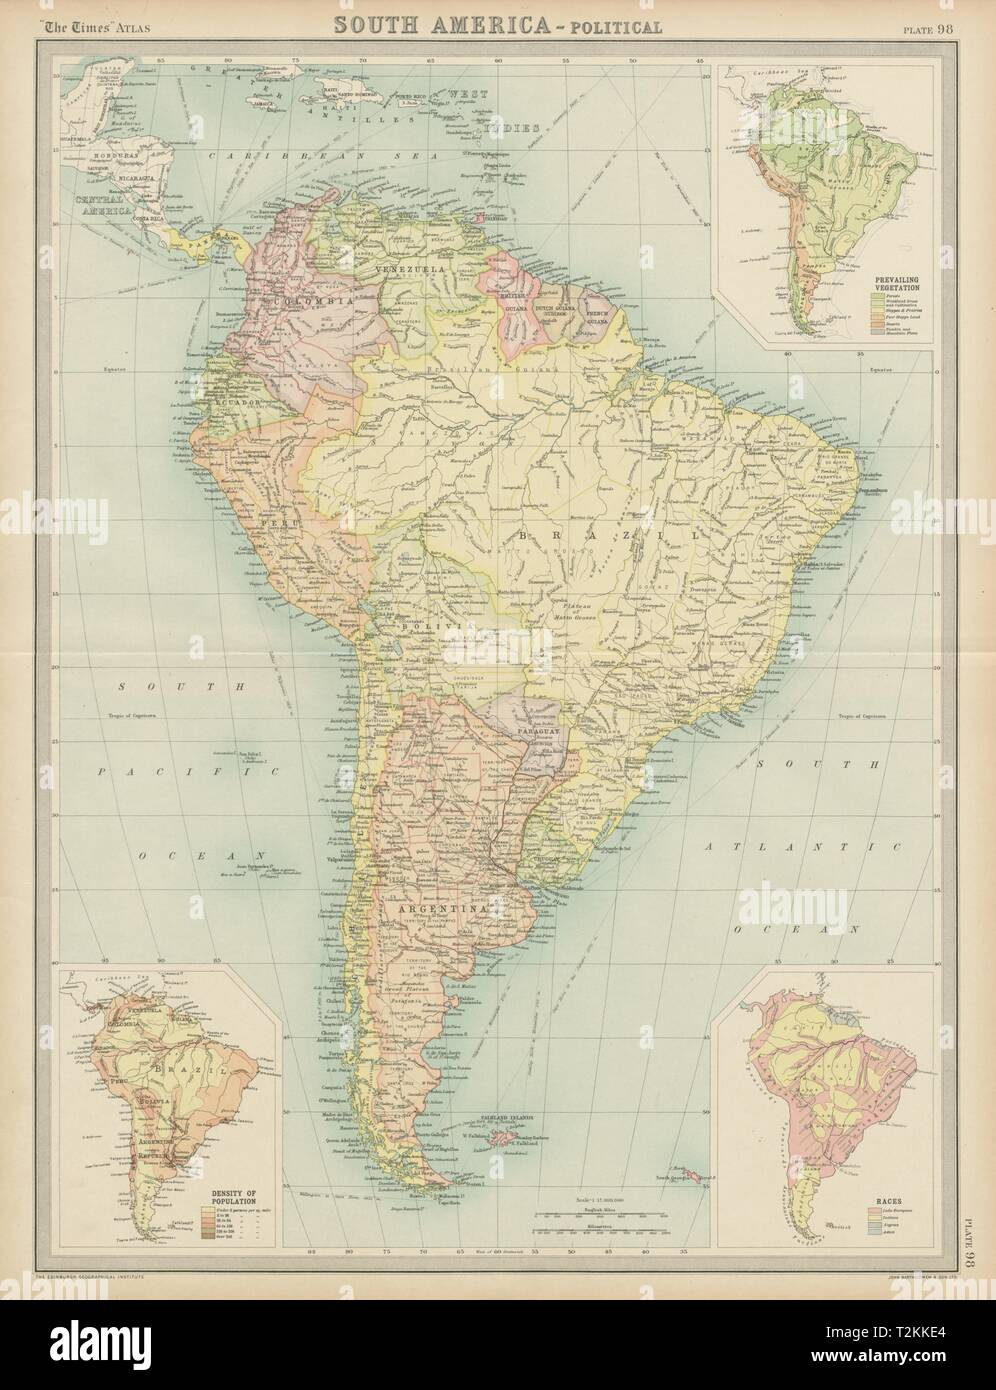 South America. Political. Ethnicity Races. THE TIMES 1922 ... on ethnic groups of central america, ethnic population of europe, aboriginals in south america, paraguay map south america, ethnic western asia map, ethnic populations in africa, ethnic origin us map by county,